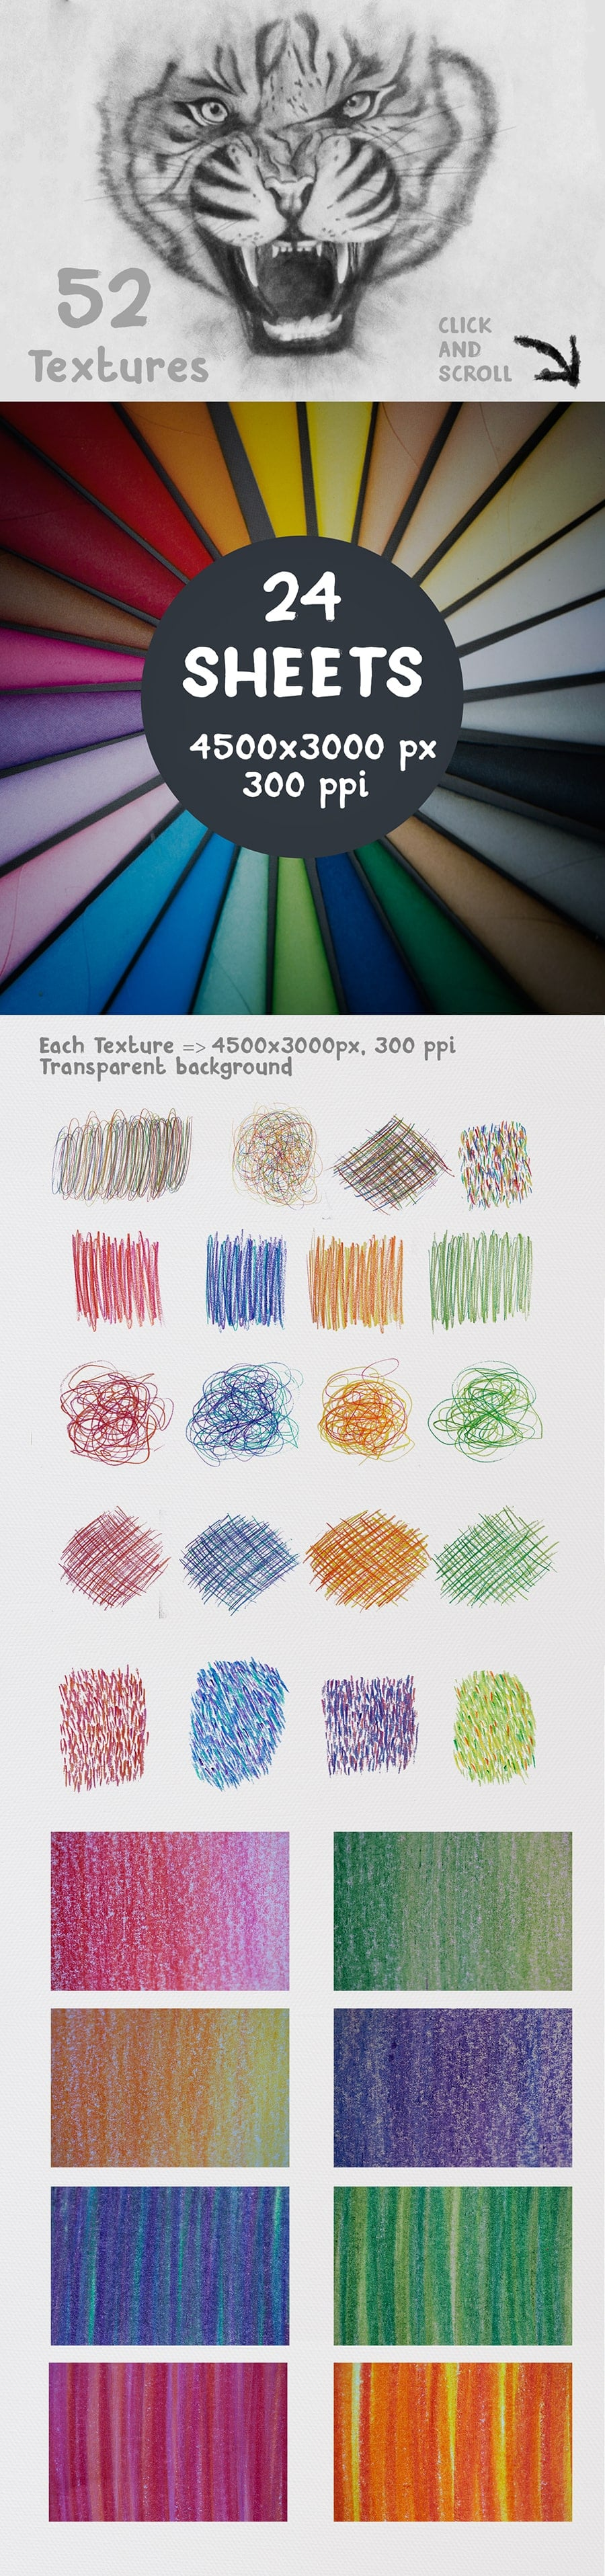 Over 11 400 Aesthetic Overlays Bundle SPECIAL OFF 98% - 5 Pencil Set min